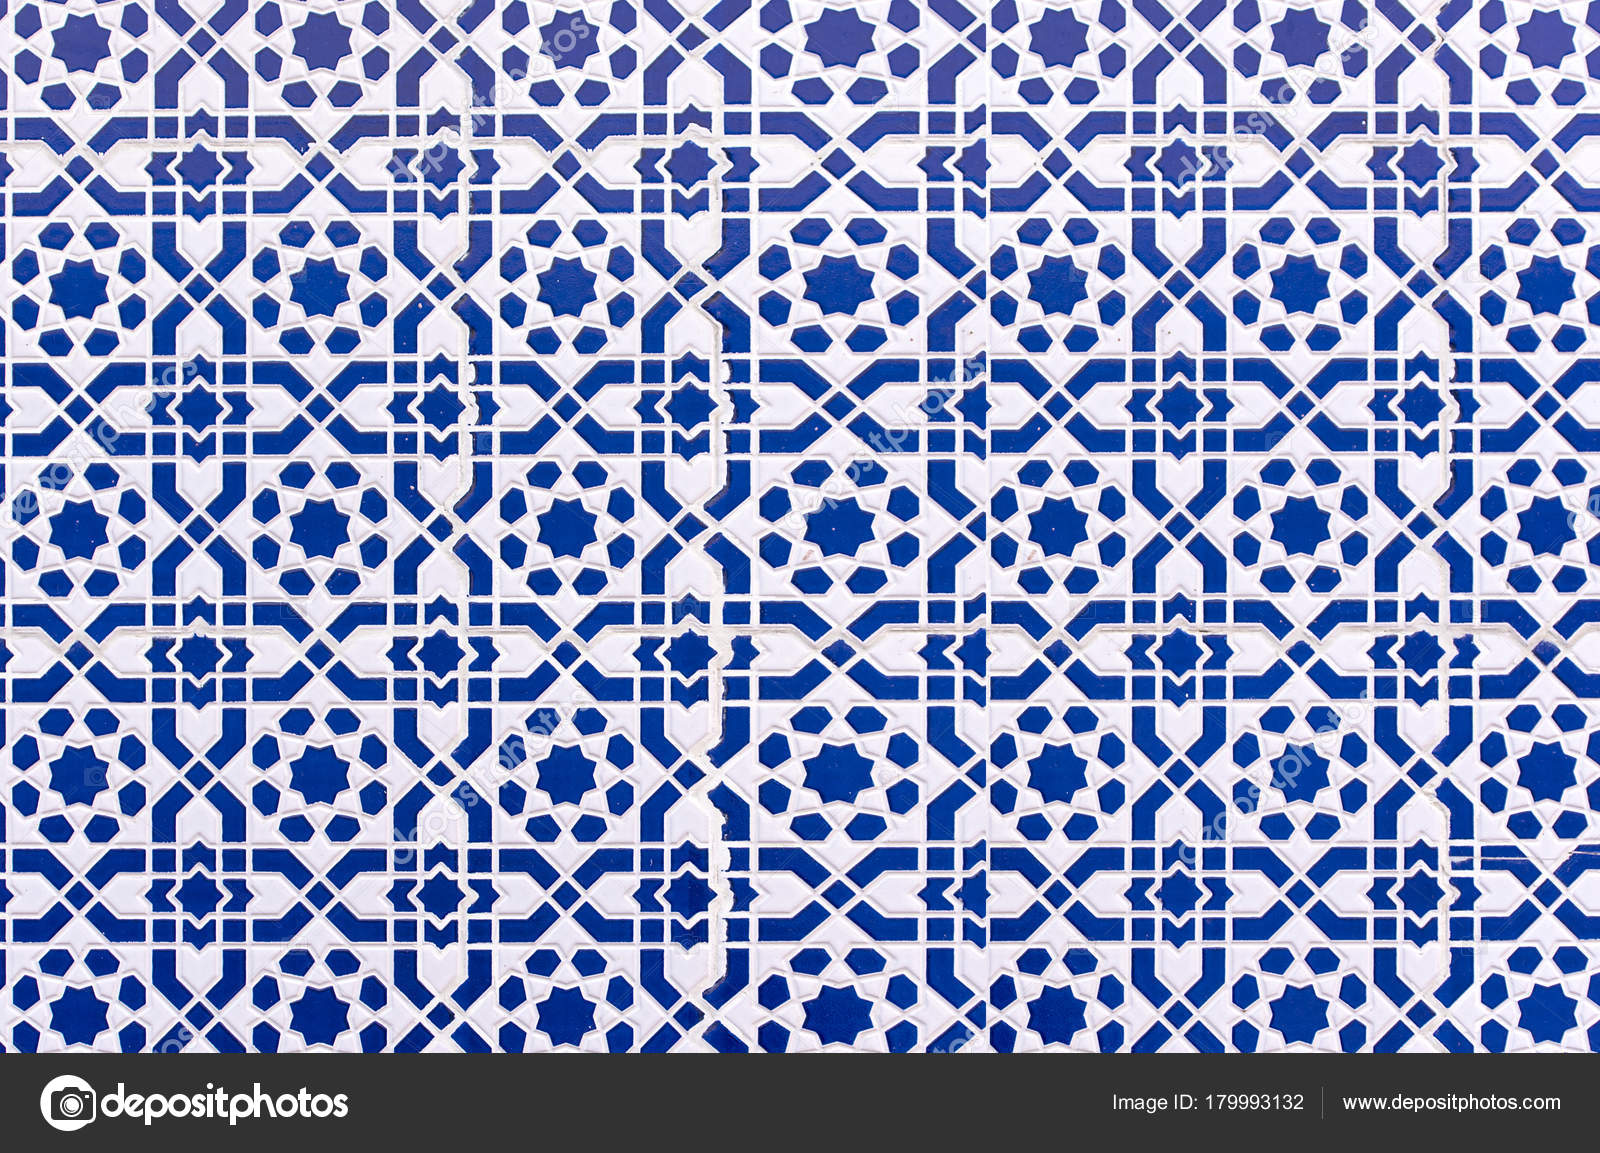 Piastrelle Marocco Moroccan Tiles Traditional Arabic Patterns Ceramic Tiles